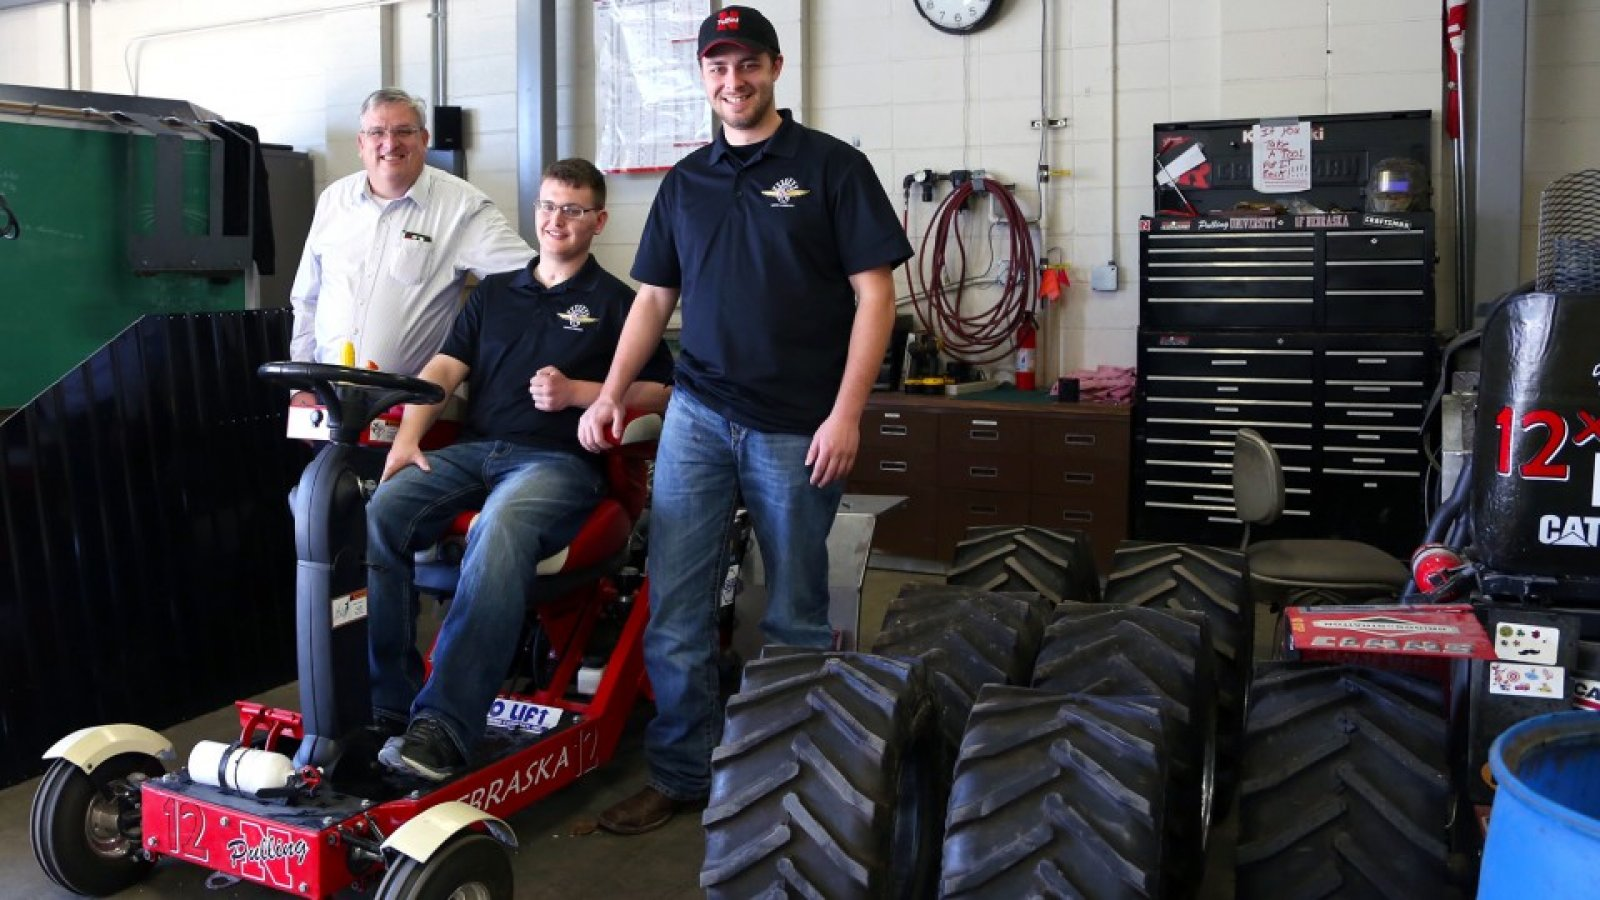 Roger Hoy (from left), Caleb Lindhorst and Luke Prosser show off a tractor designed by students for a 2014 engineering competition. Lindhorst was involved in a December 2013 auto accident and support from Hoy and Prosser has helped him return to classes on campus. For his work supporting Lindhorst and other students, Hoy has received the James V. Griesen Exemplary Service to Students Award.